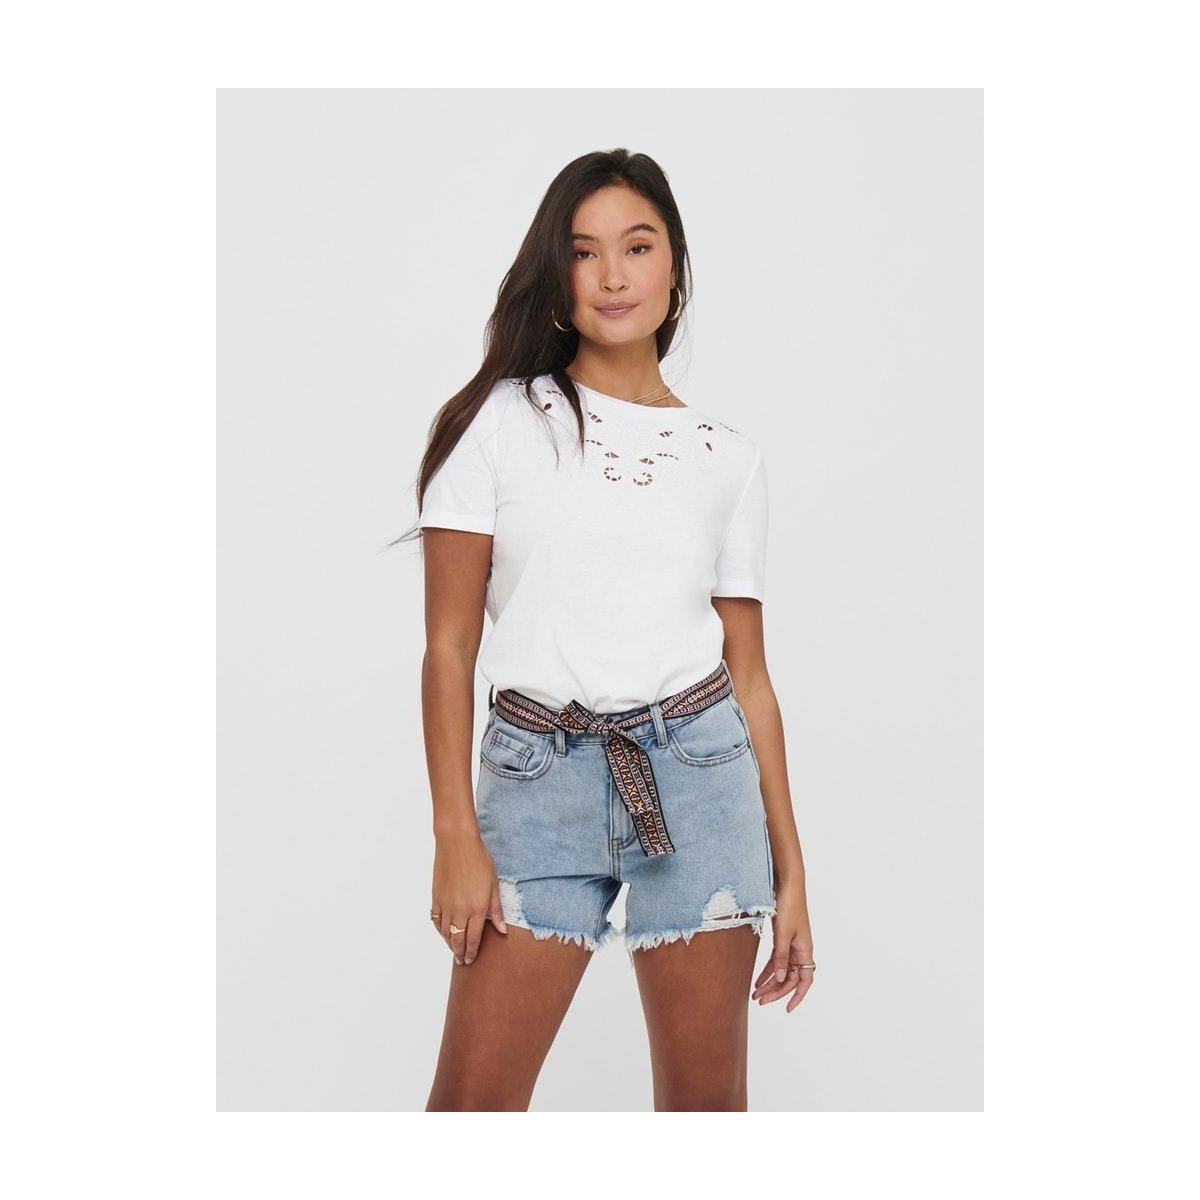 onltheresa life s/s top jrs 15204300 only t-shirt bright white